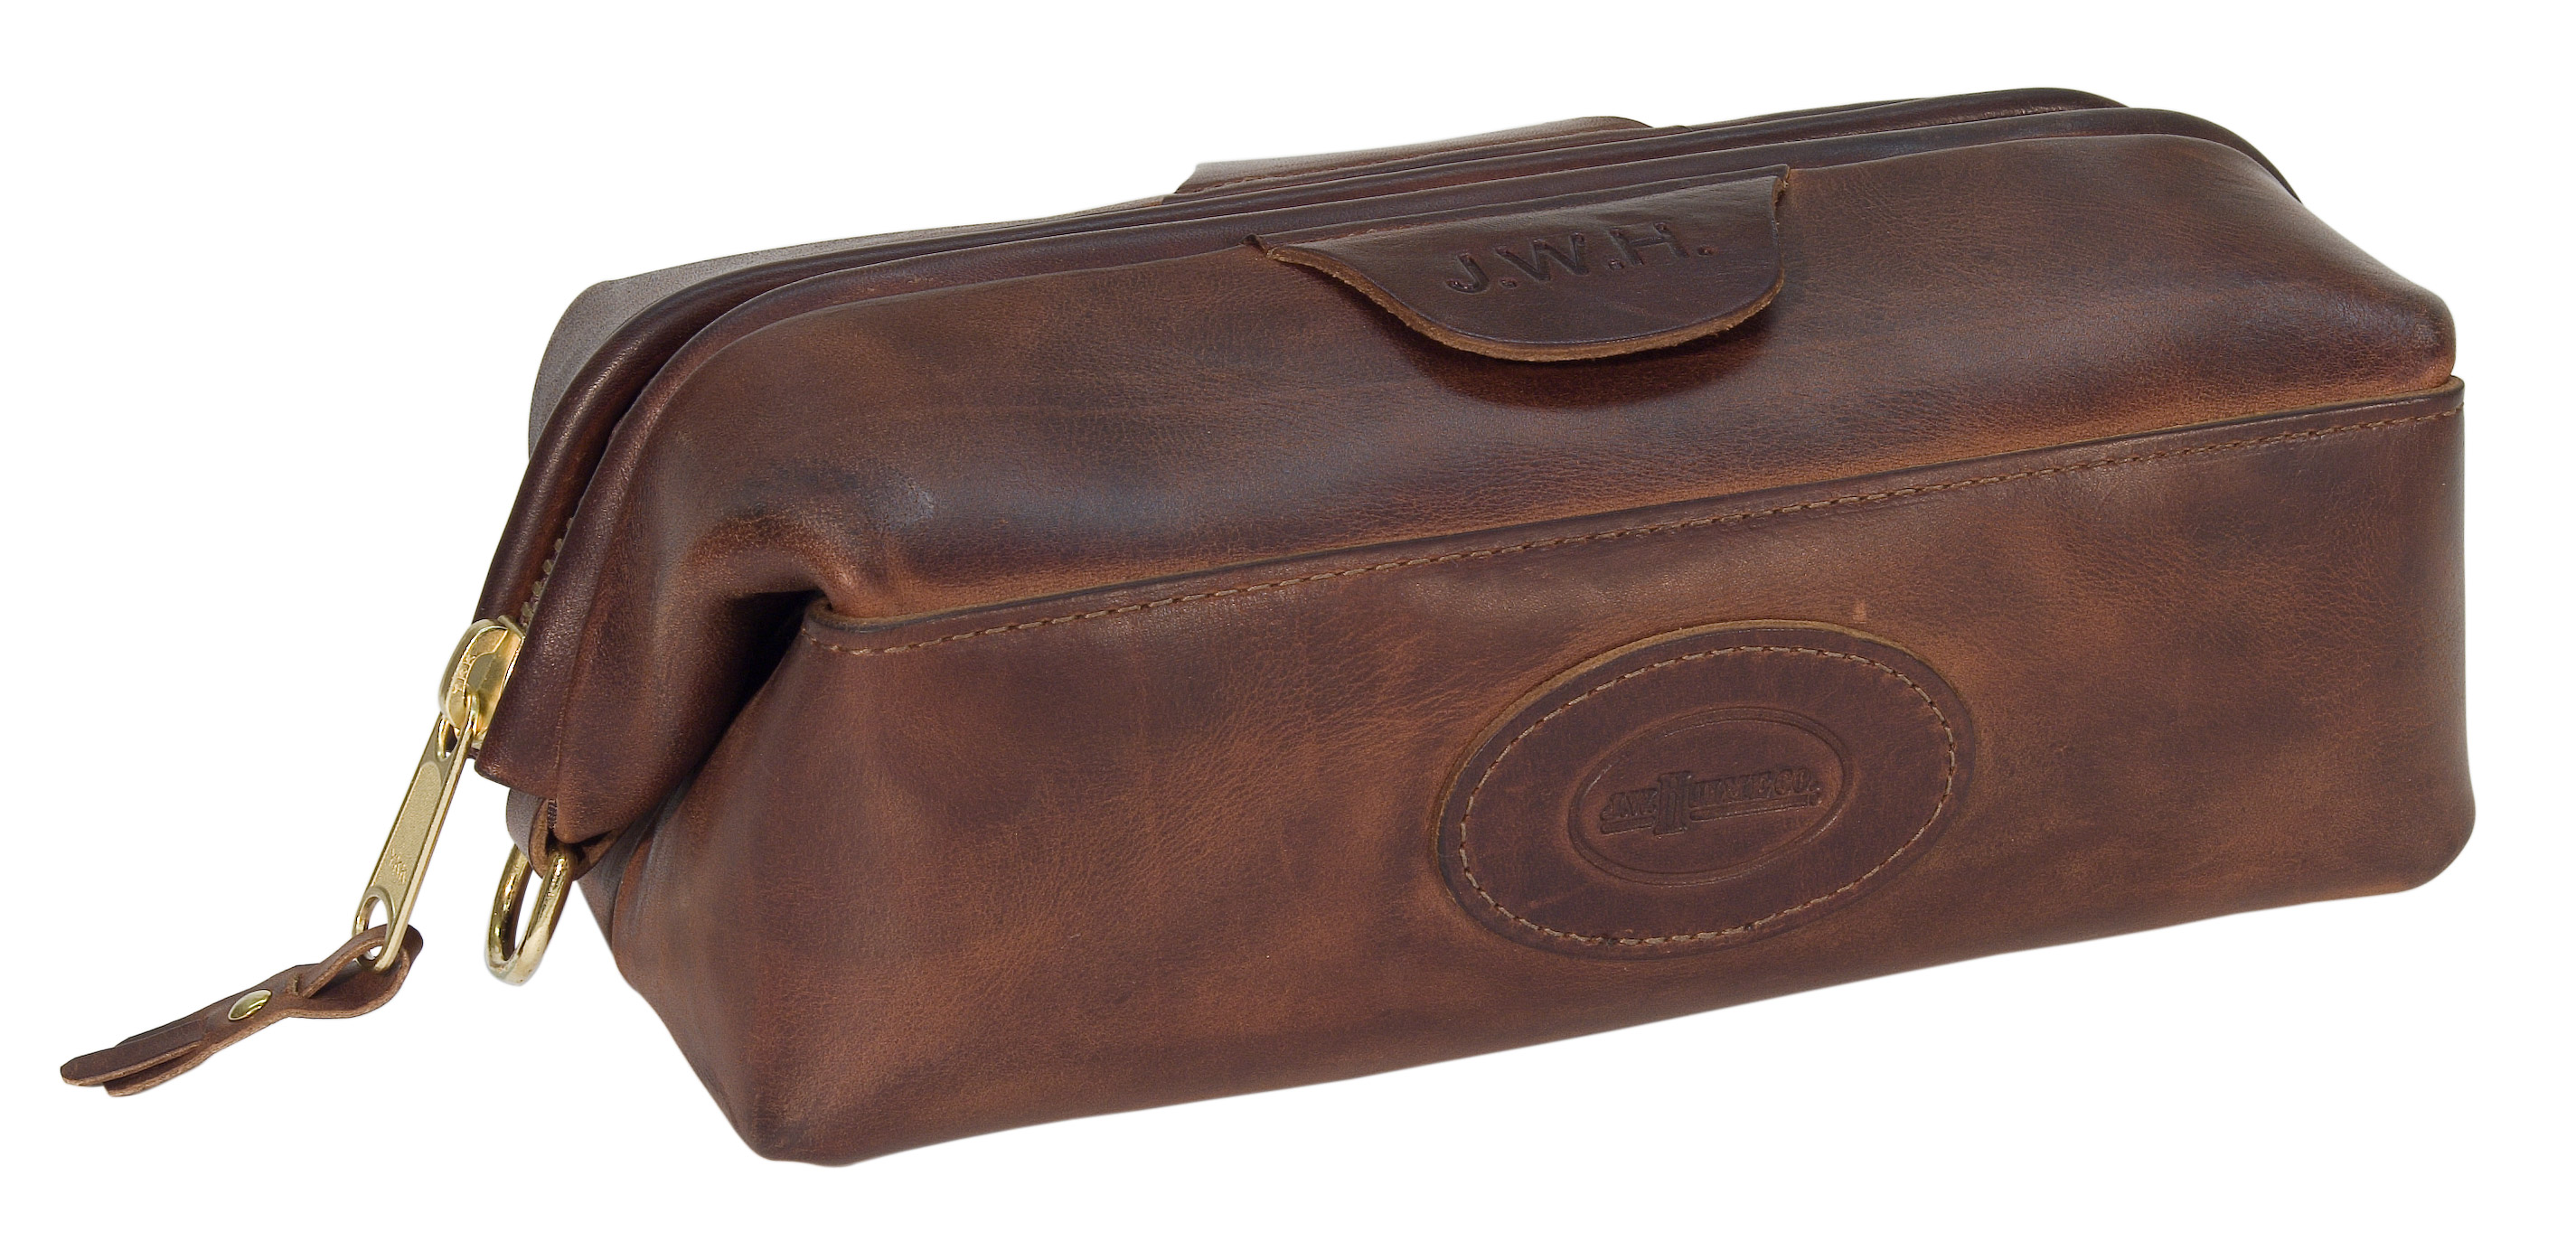 55146b76854 ... Dopp Kit – Mens Toiletry Bag   Buffalo Jackson XK89 – source   buffalojackson.com. Brand new J. W. Hulme Company Announces American  Heritage a New Line ...